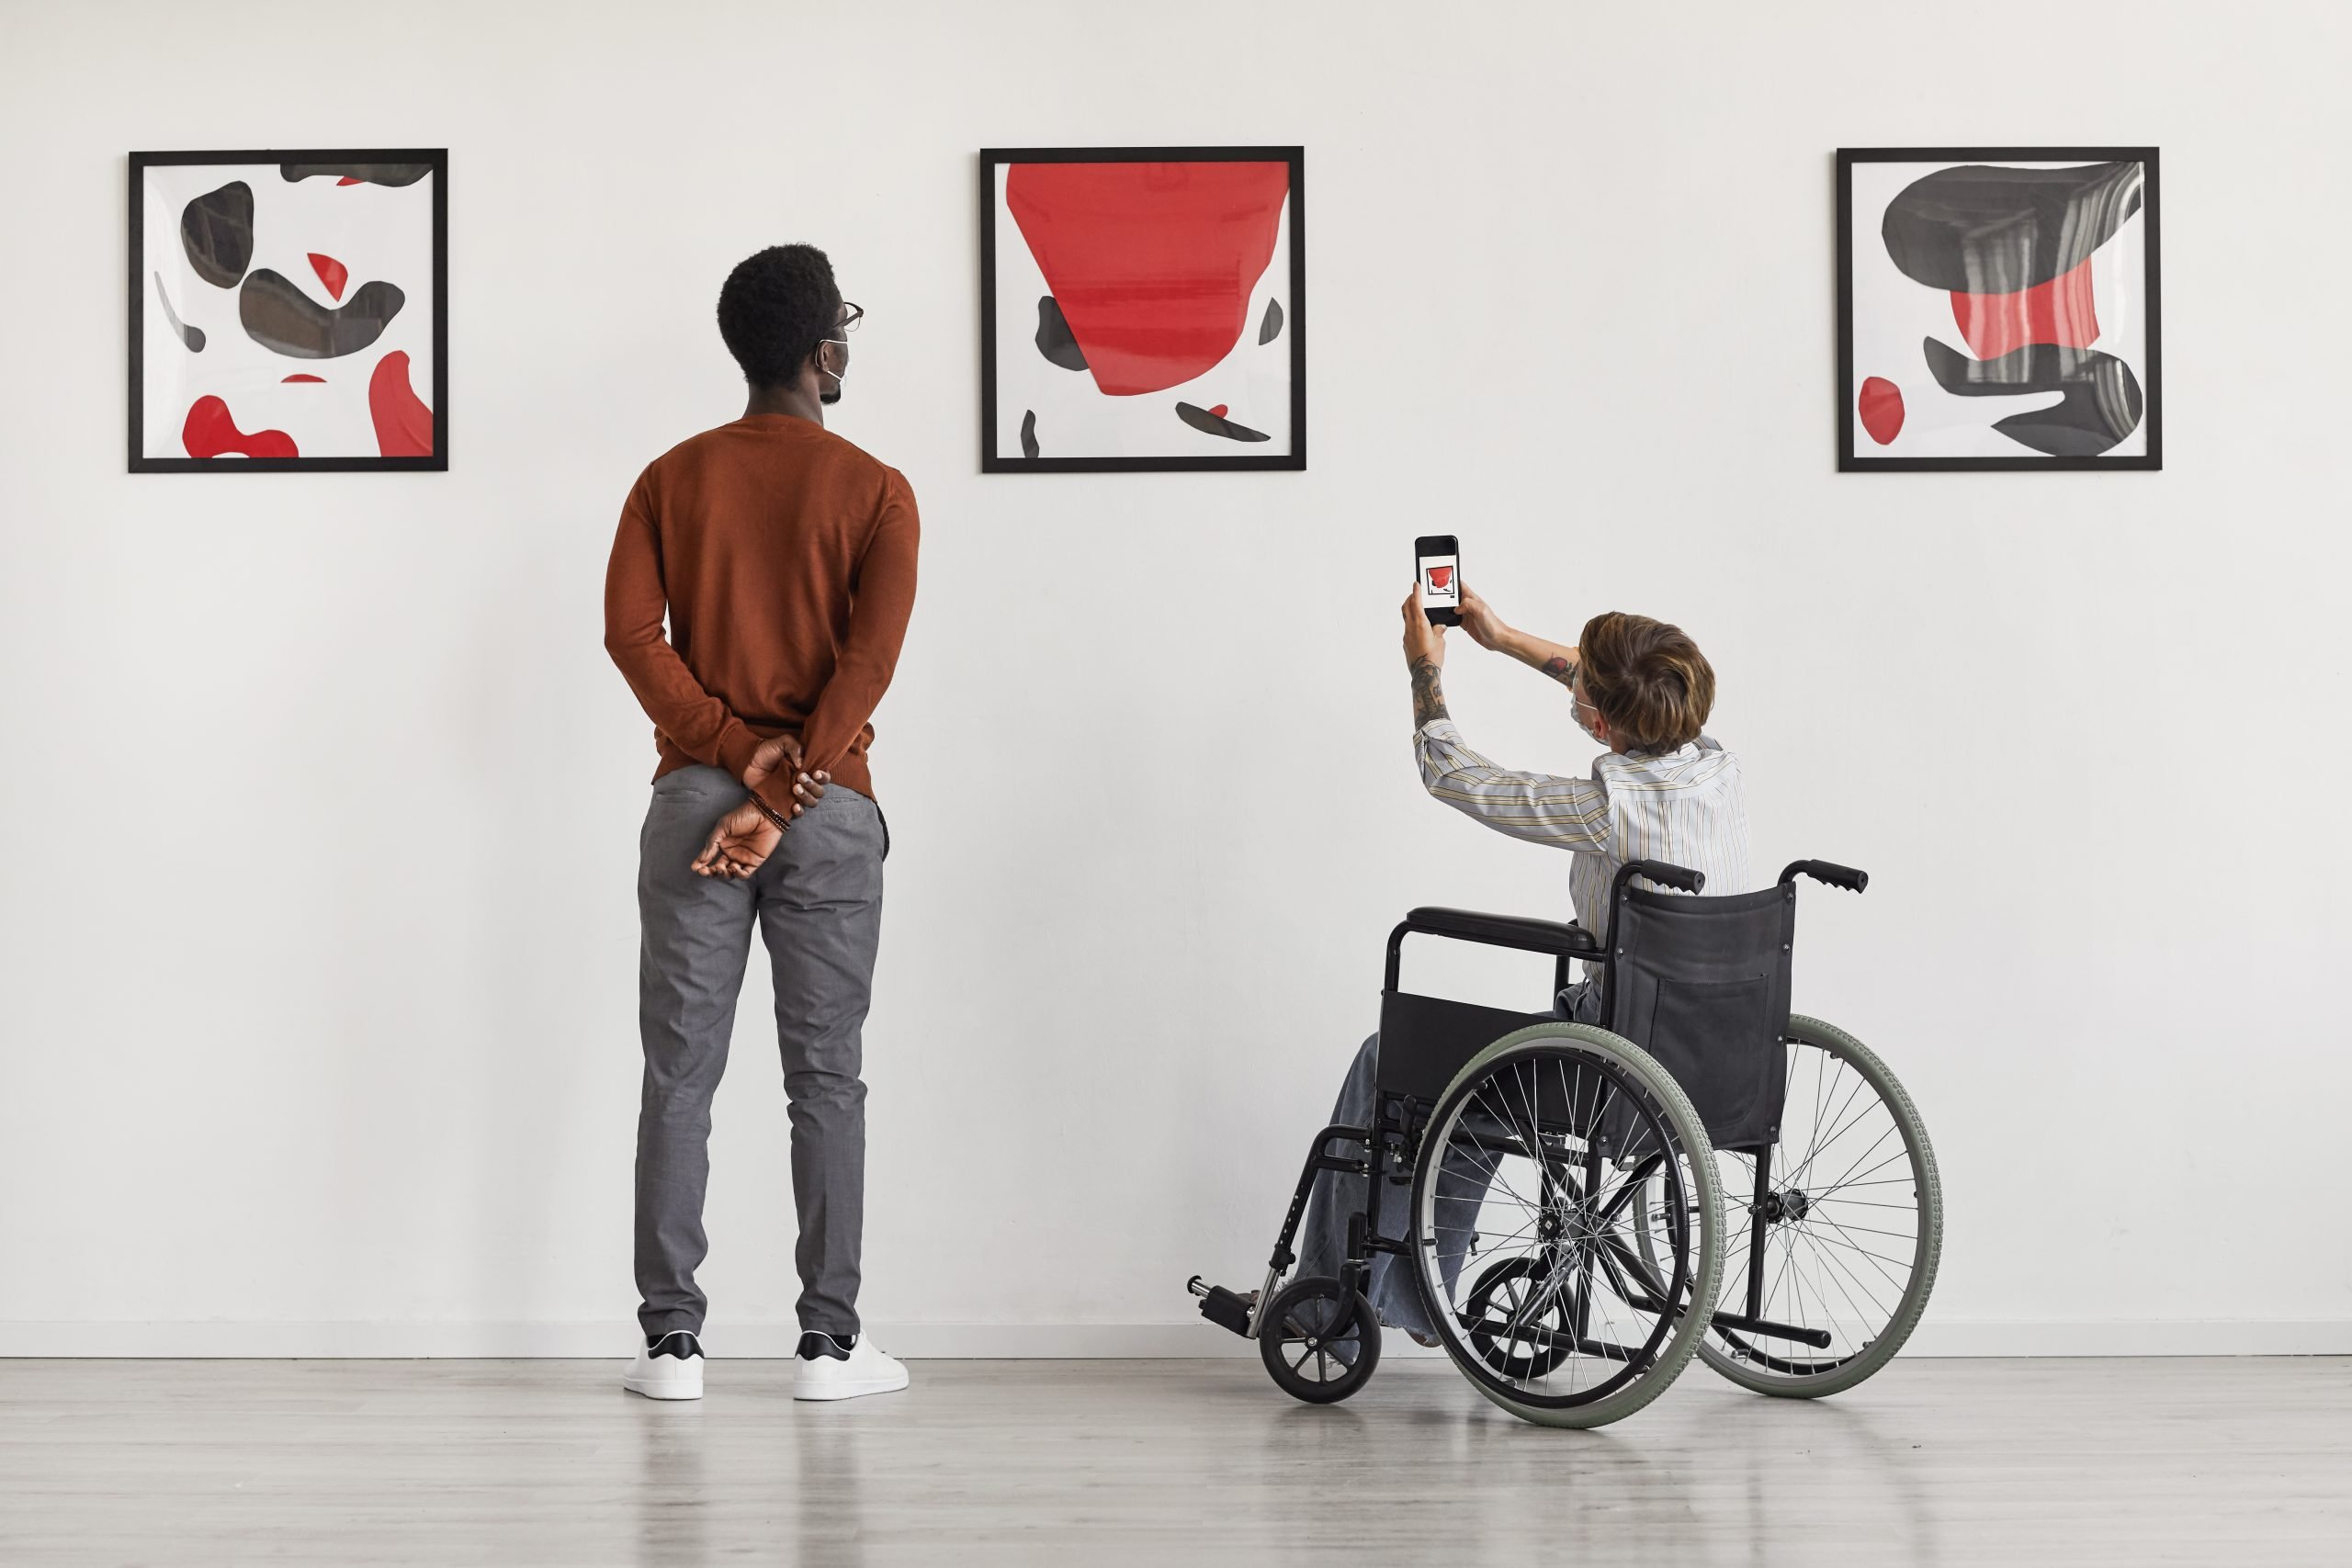 Two individuals, one standing and one in a wheelchair, admire a piece of art in a museum